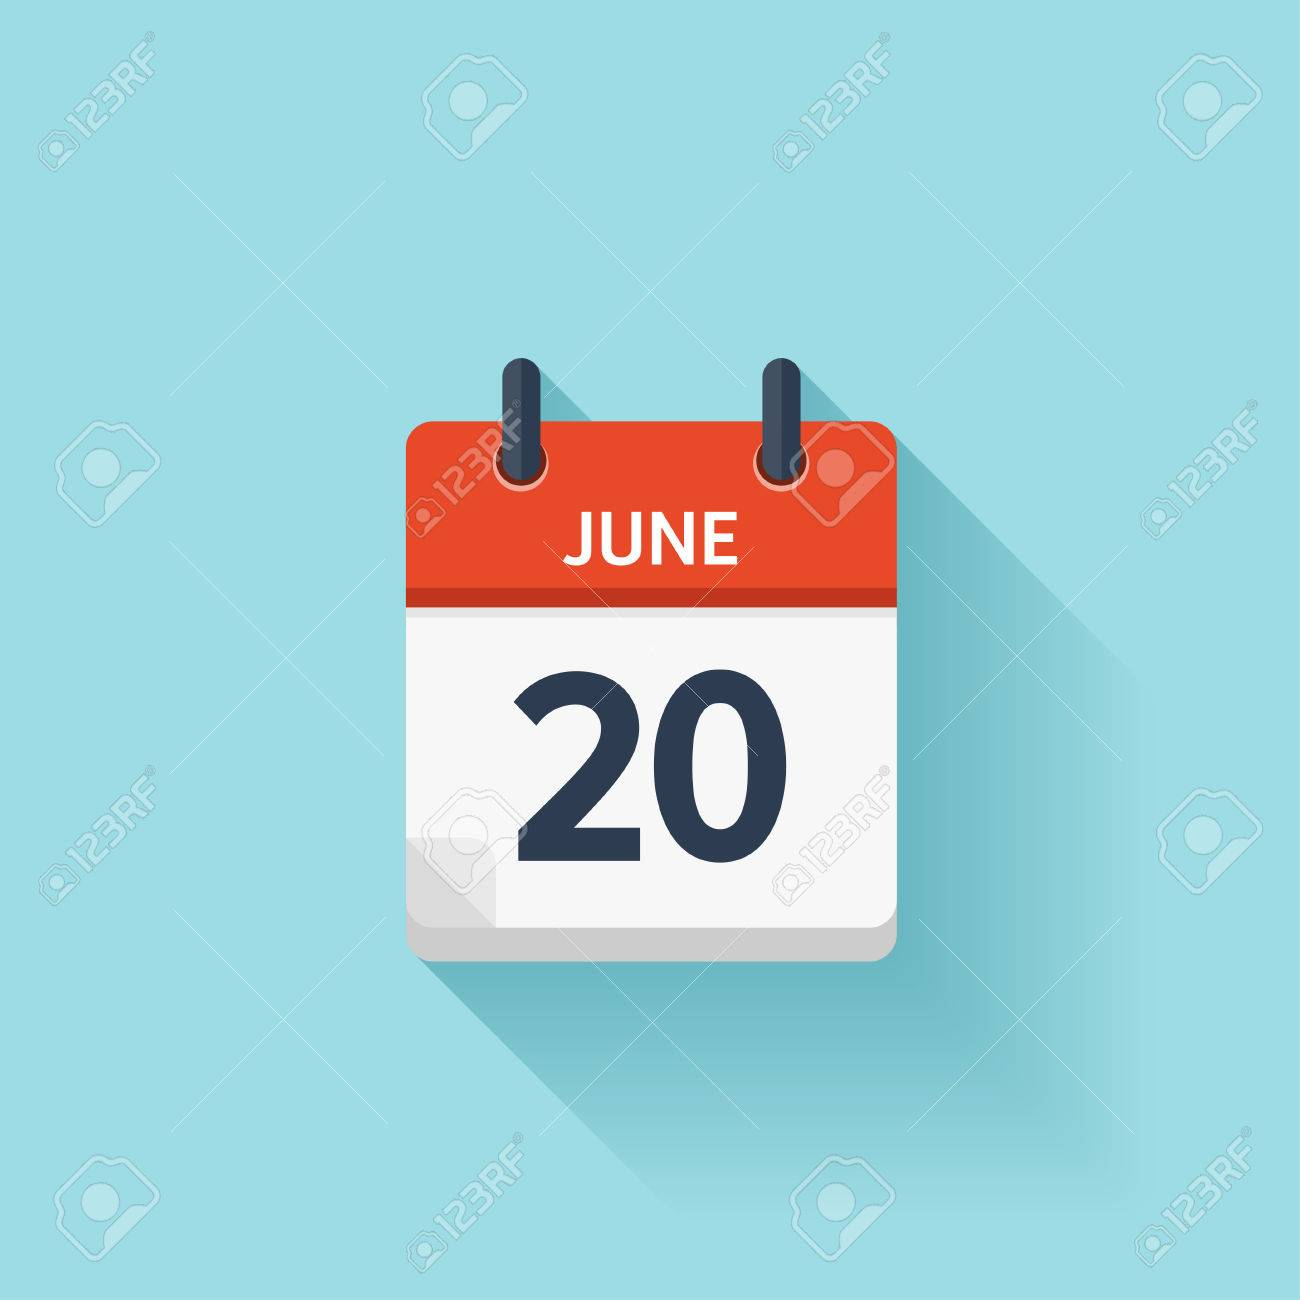 June 20 . Vector flat daily calendar icon. Date and time, day, month. Holiday. - 54047988